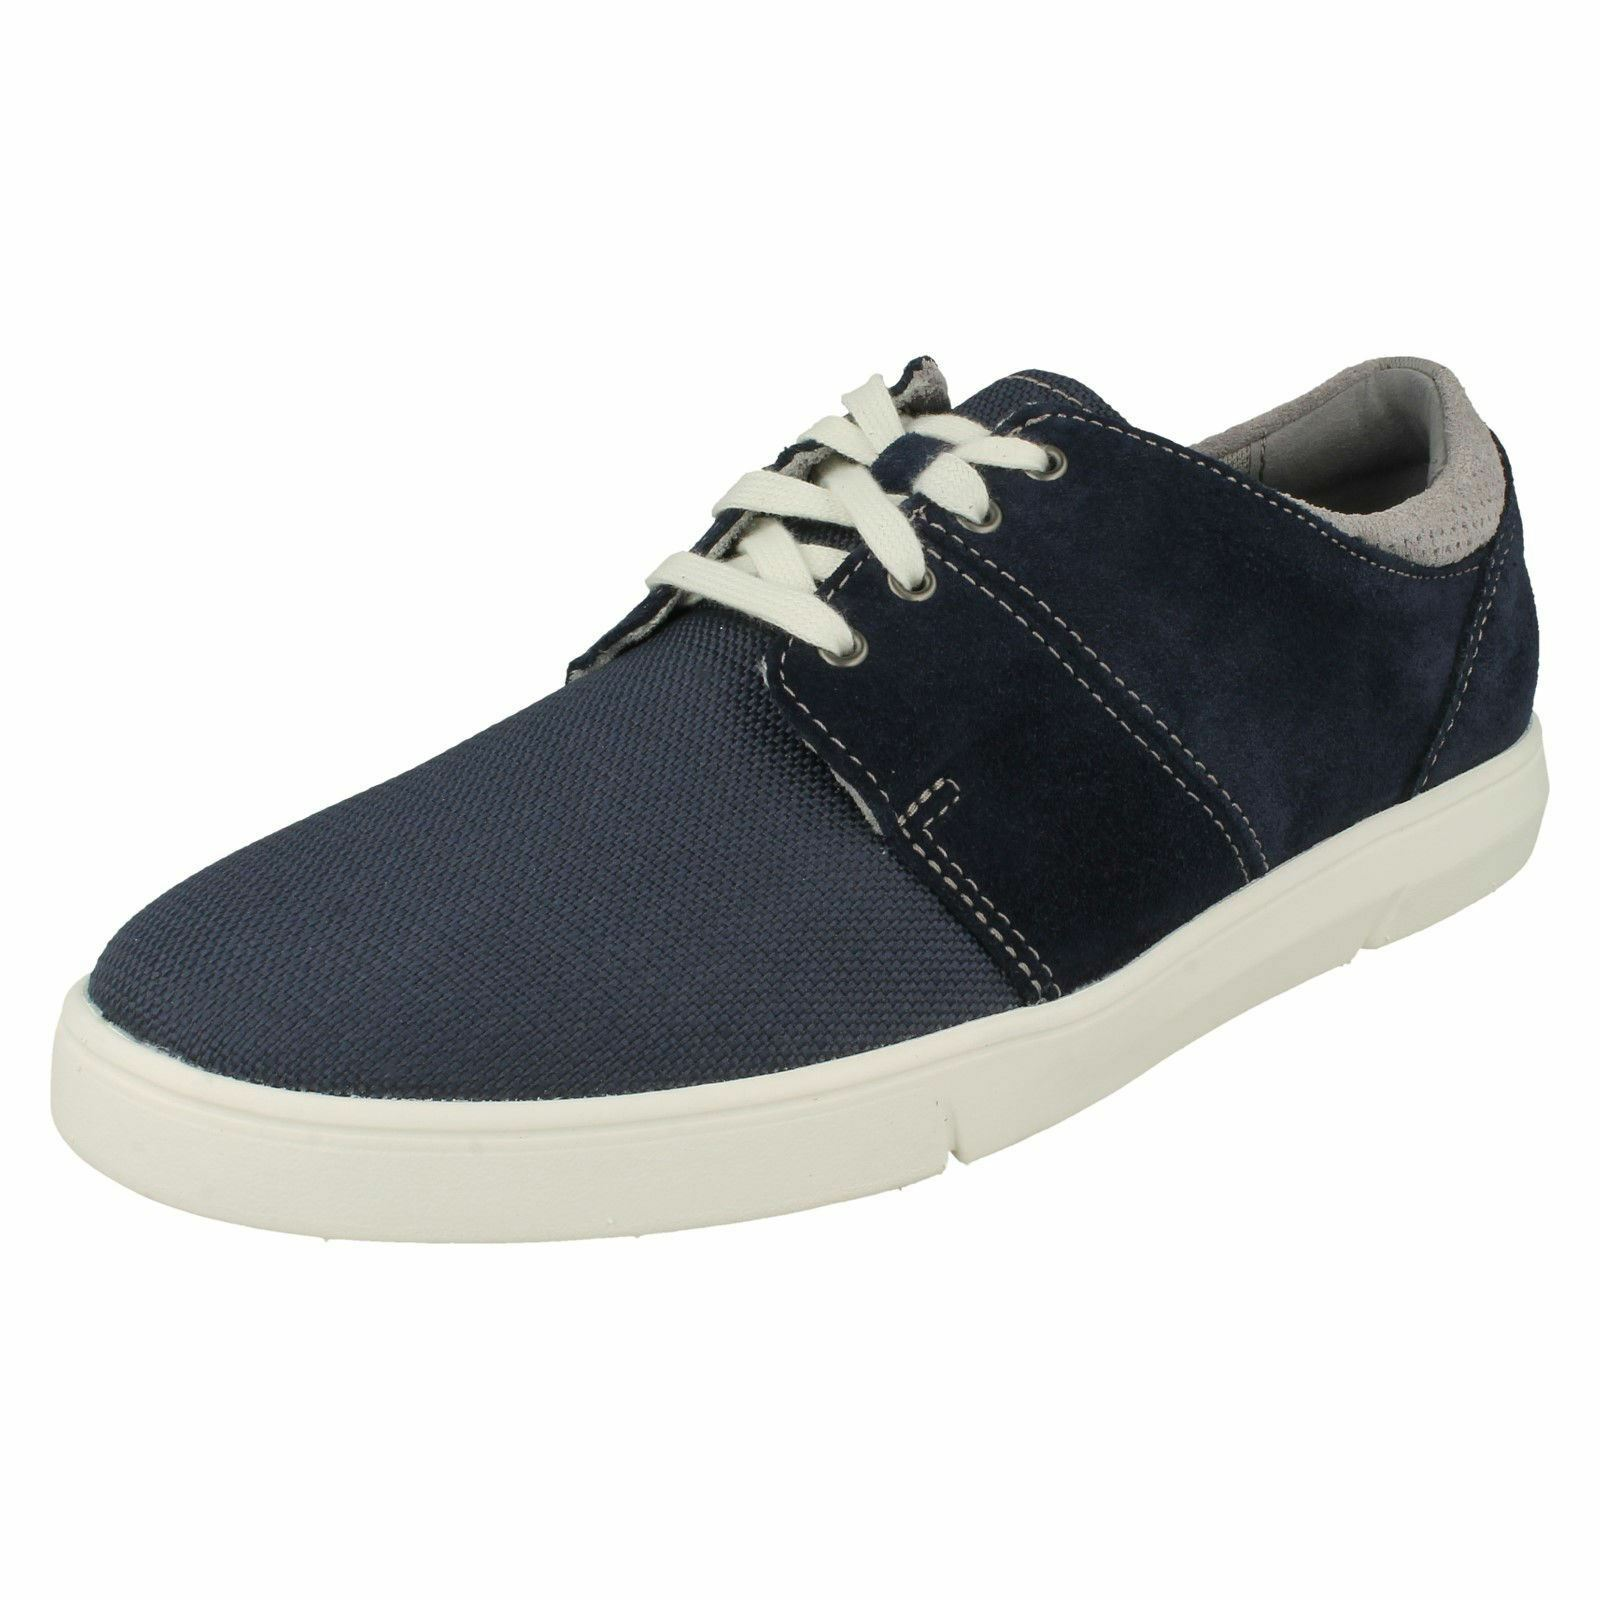 Mens Clarks Casual Lace Up schuhe Landry Edge.